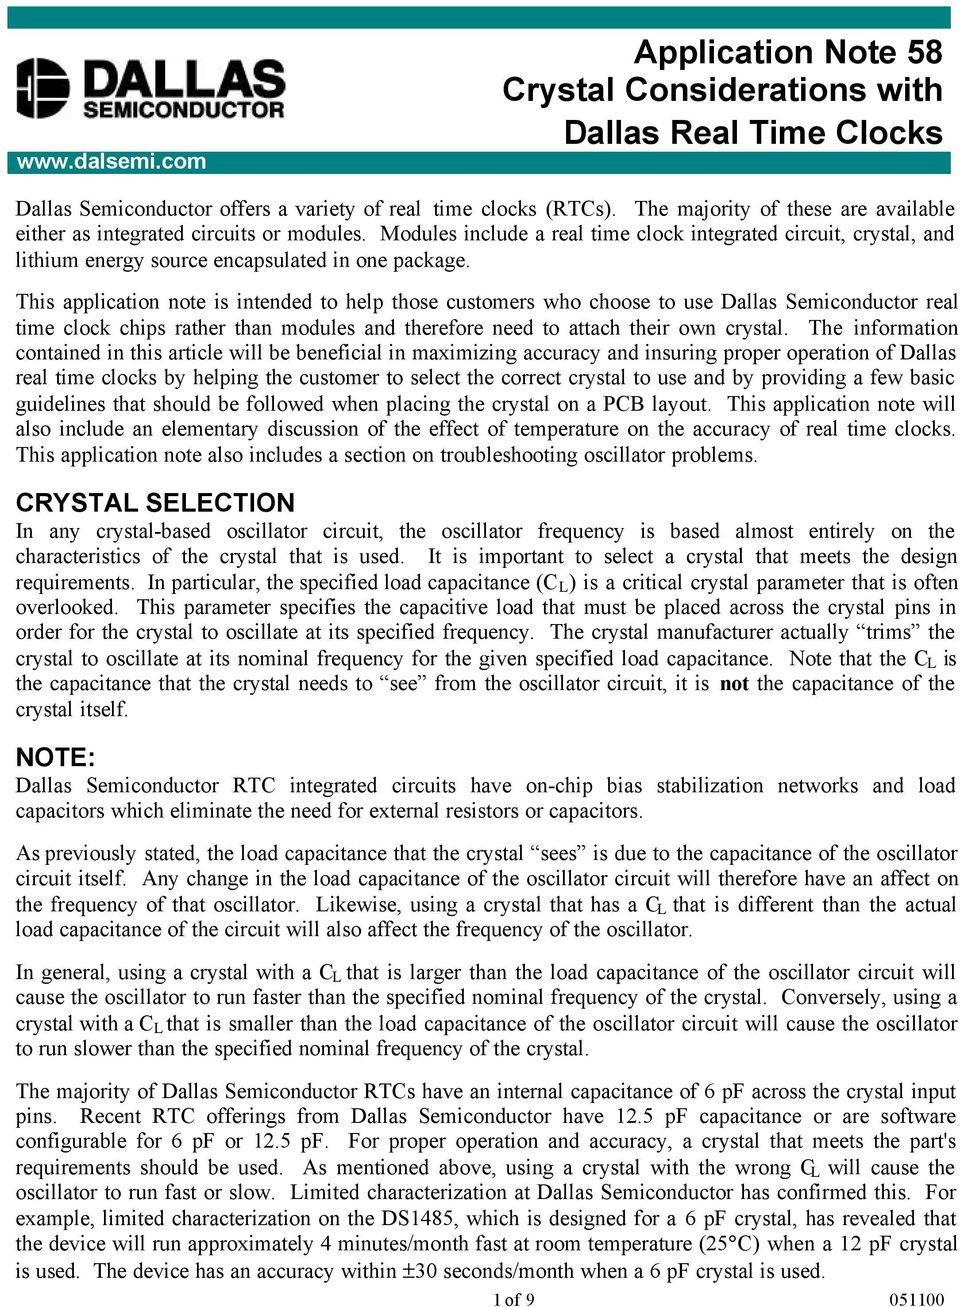 Application Note 58 Crystal Considerations With Dallas Real Time Integrated Circuits Crystals This Is Intended To Help Those Customers Who Choose Use Semiconductor